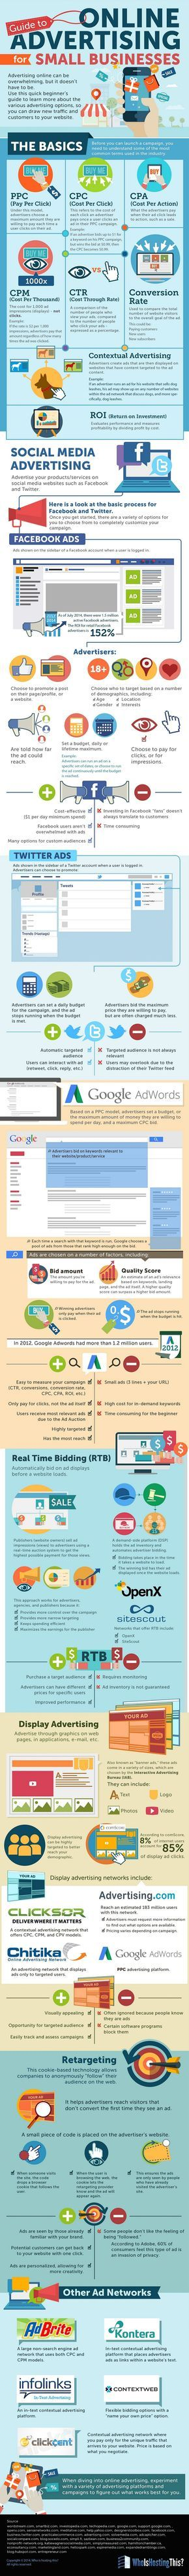 Guide To #OnlineAdvertising For Small Businesses - #Socialmediamarketing #infografía